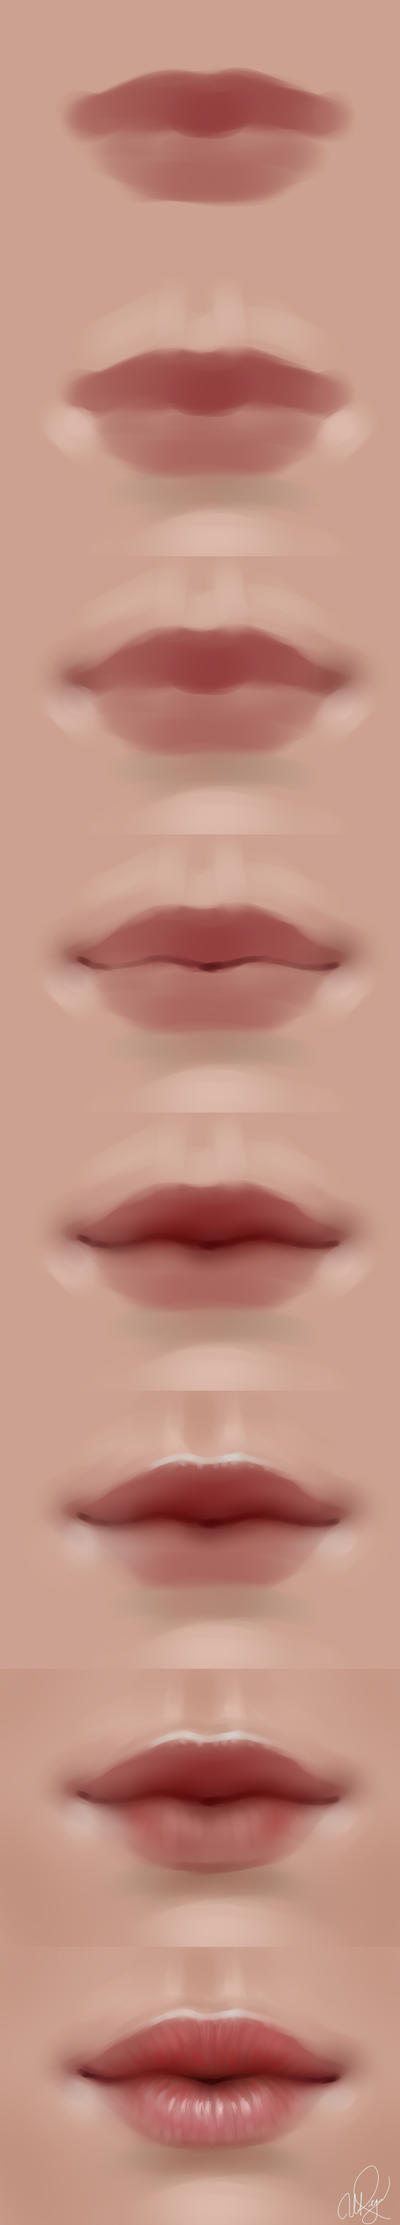 lips walkthrough by Selenada